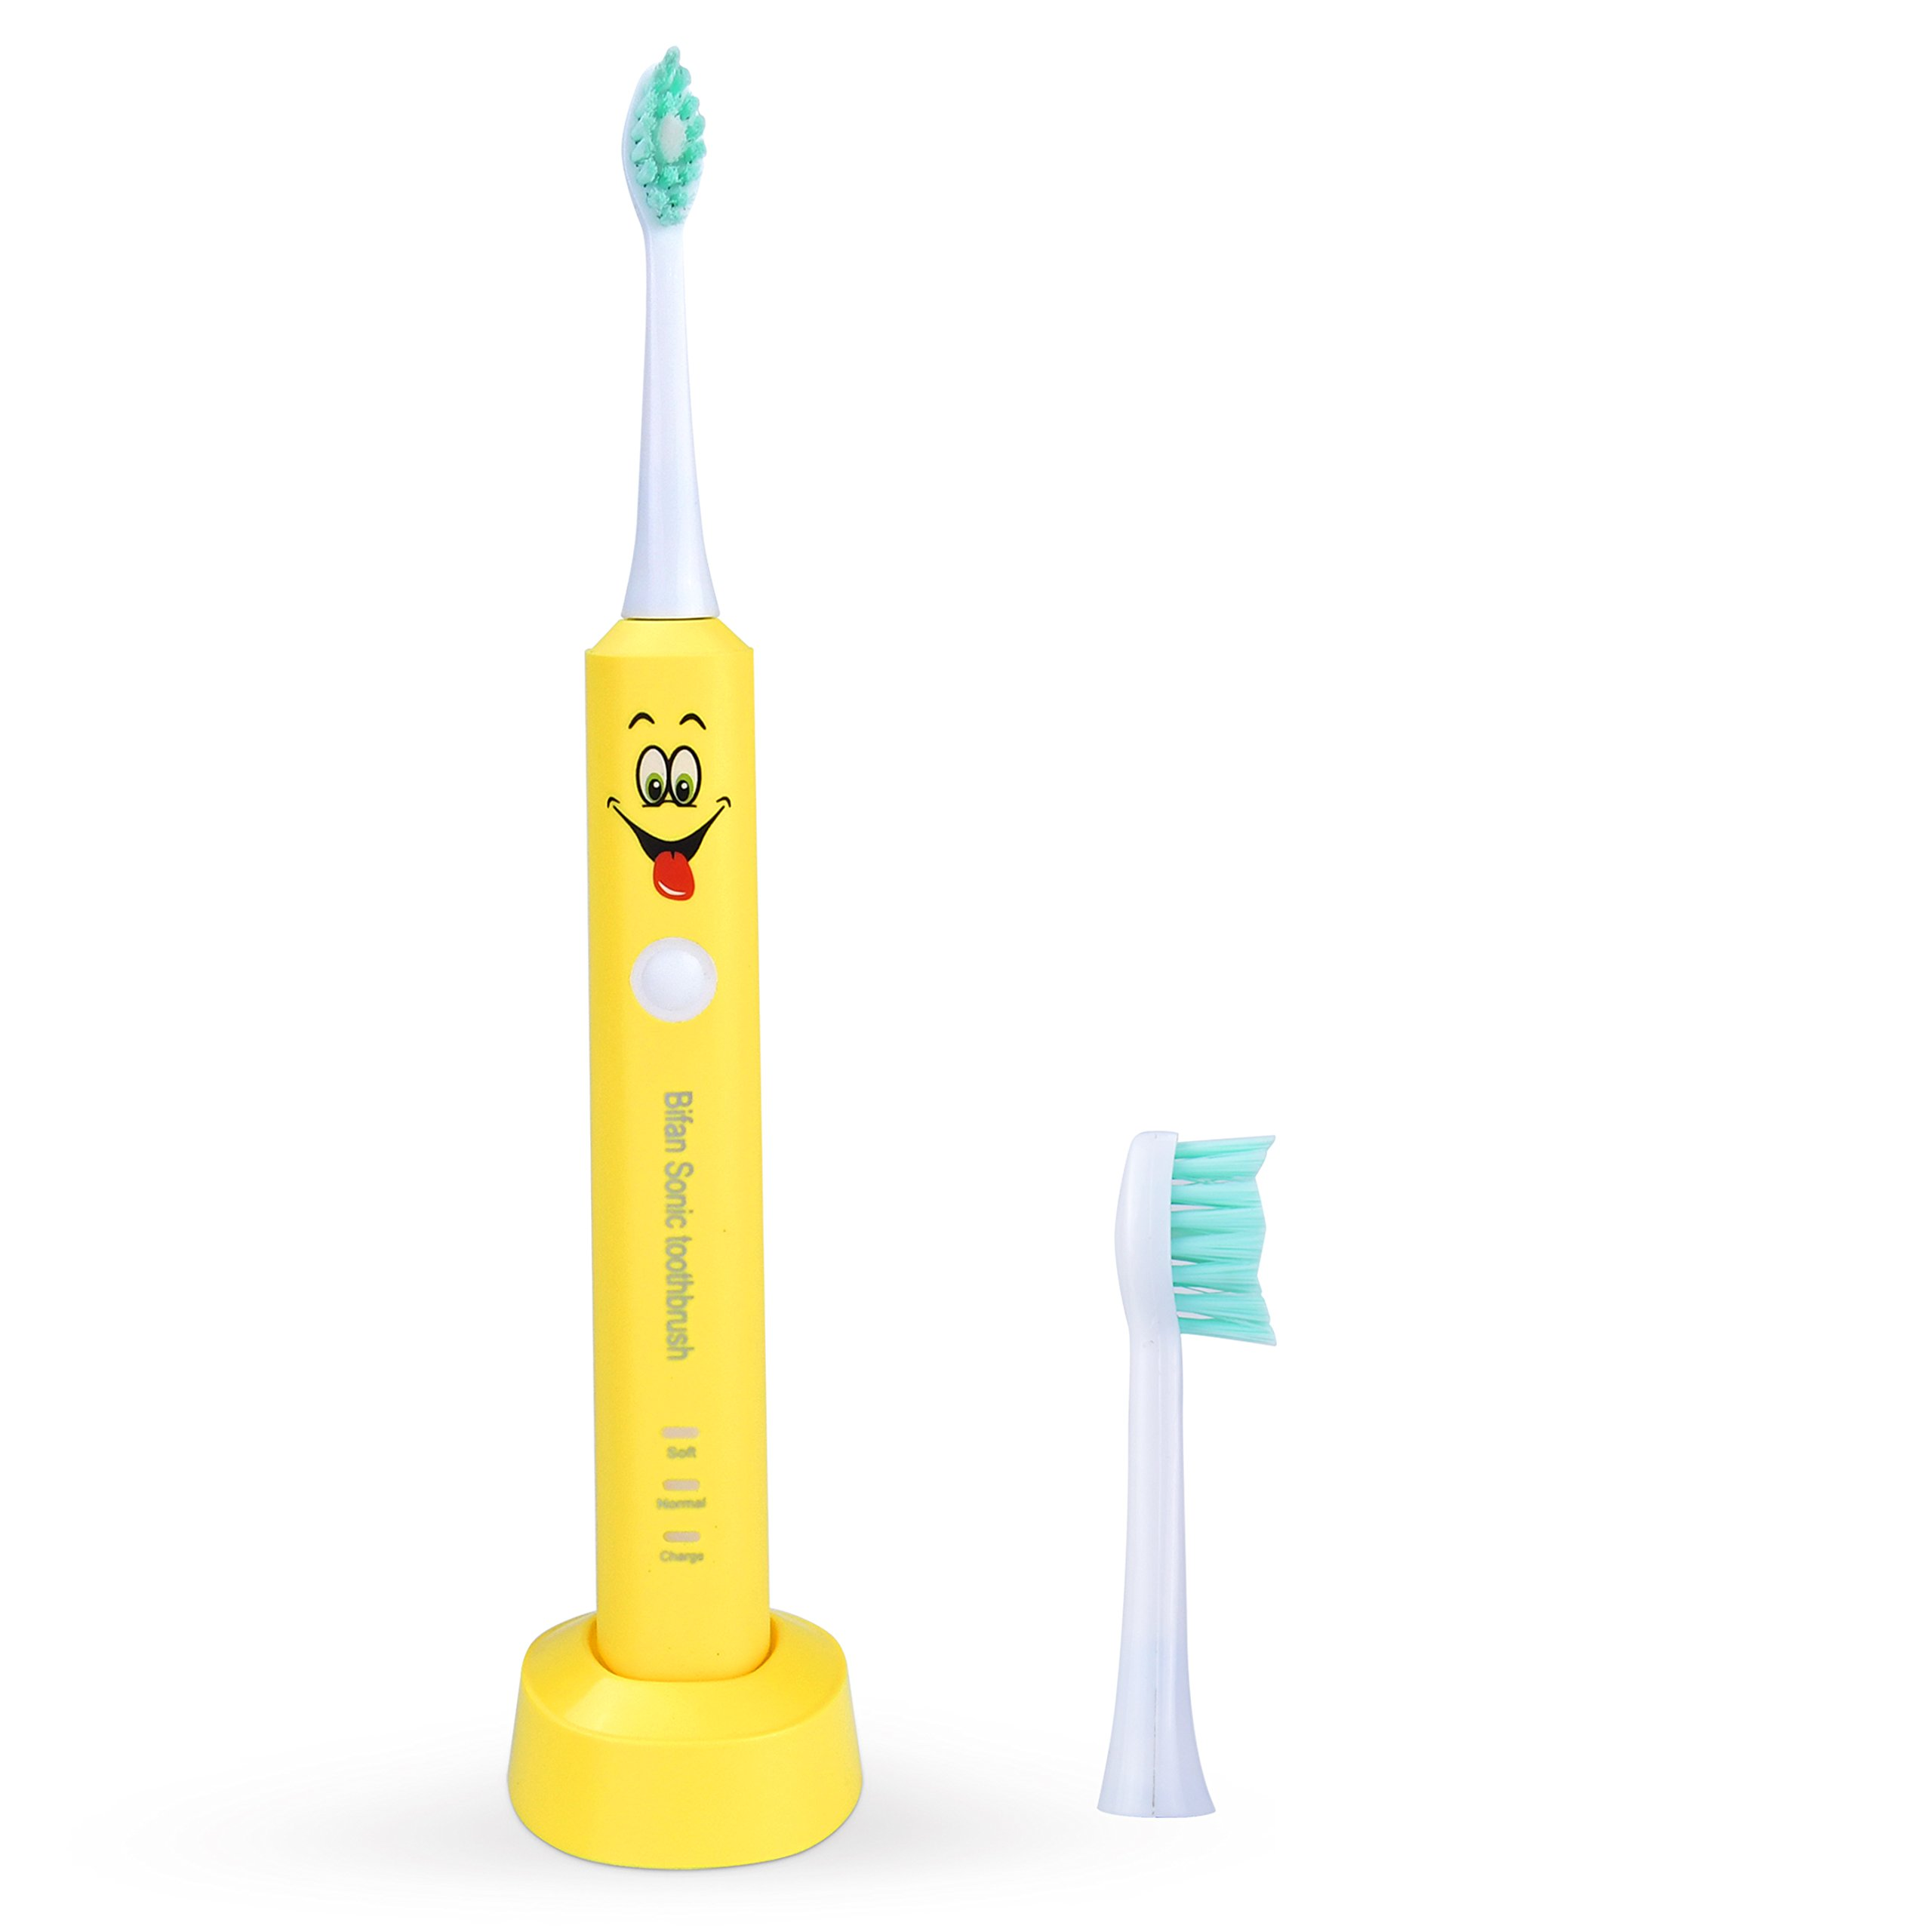 Kids Electric Toothbrushes Rechargeable Waterproof Children Sonic Toothbrush,Cartoon Smiley Design,with Extra 2 Replaceable Soft Brush Heads for Kids Boys Girls Teens(4-18 years)-yellow